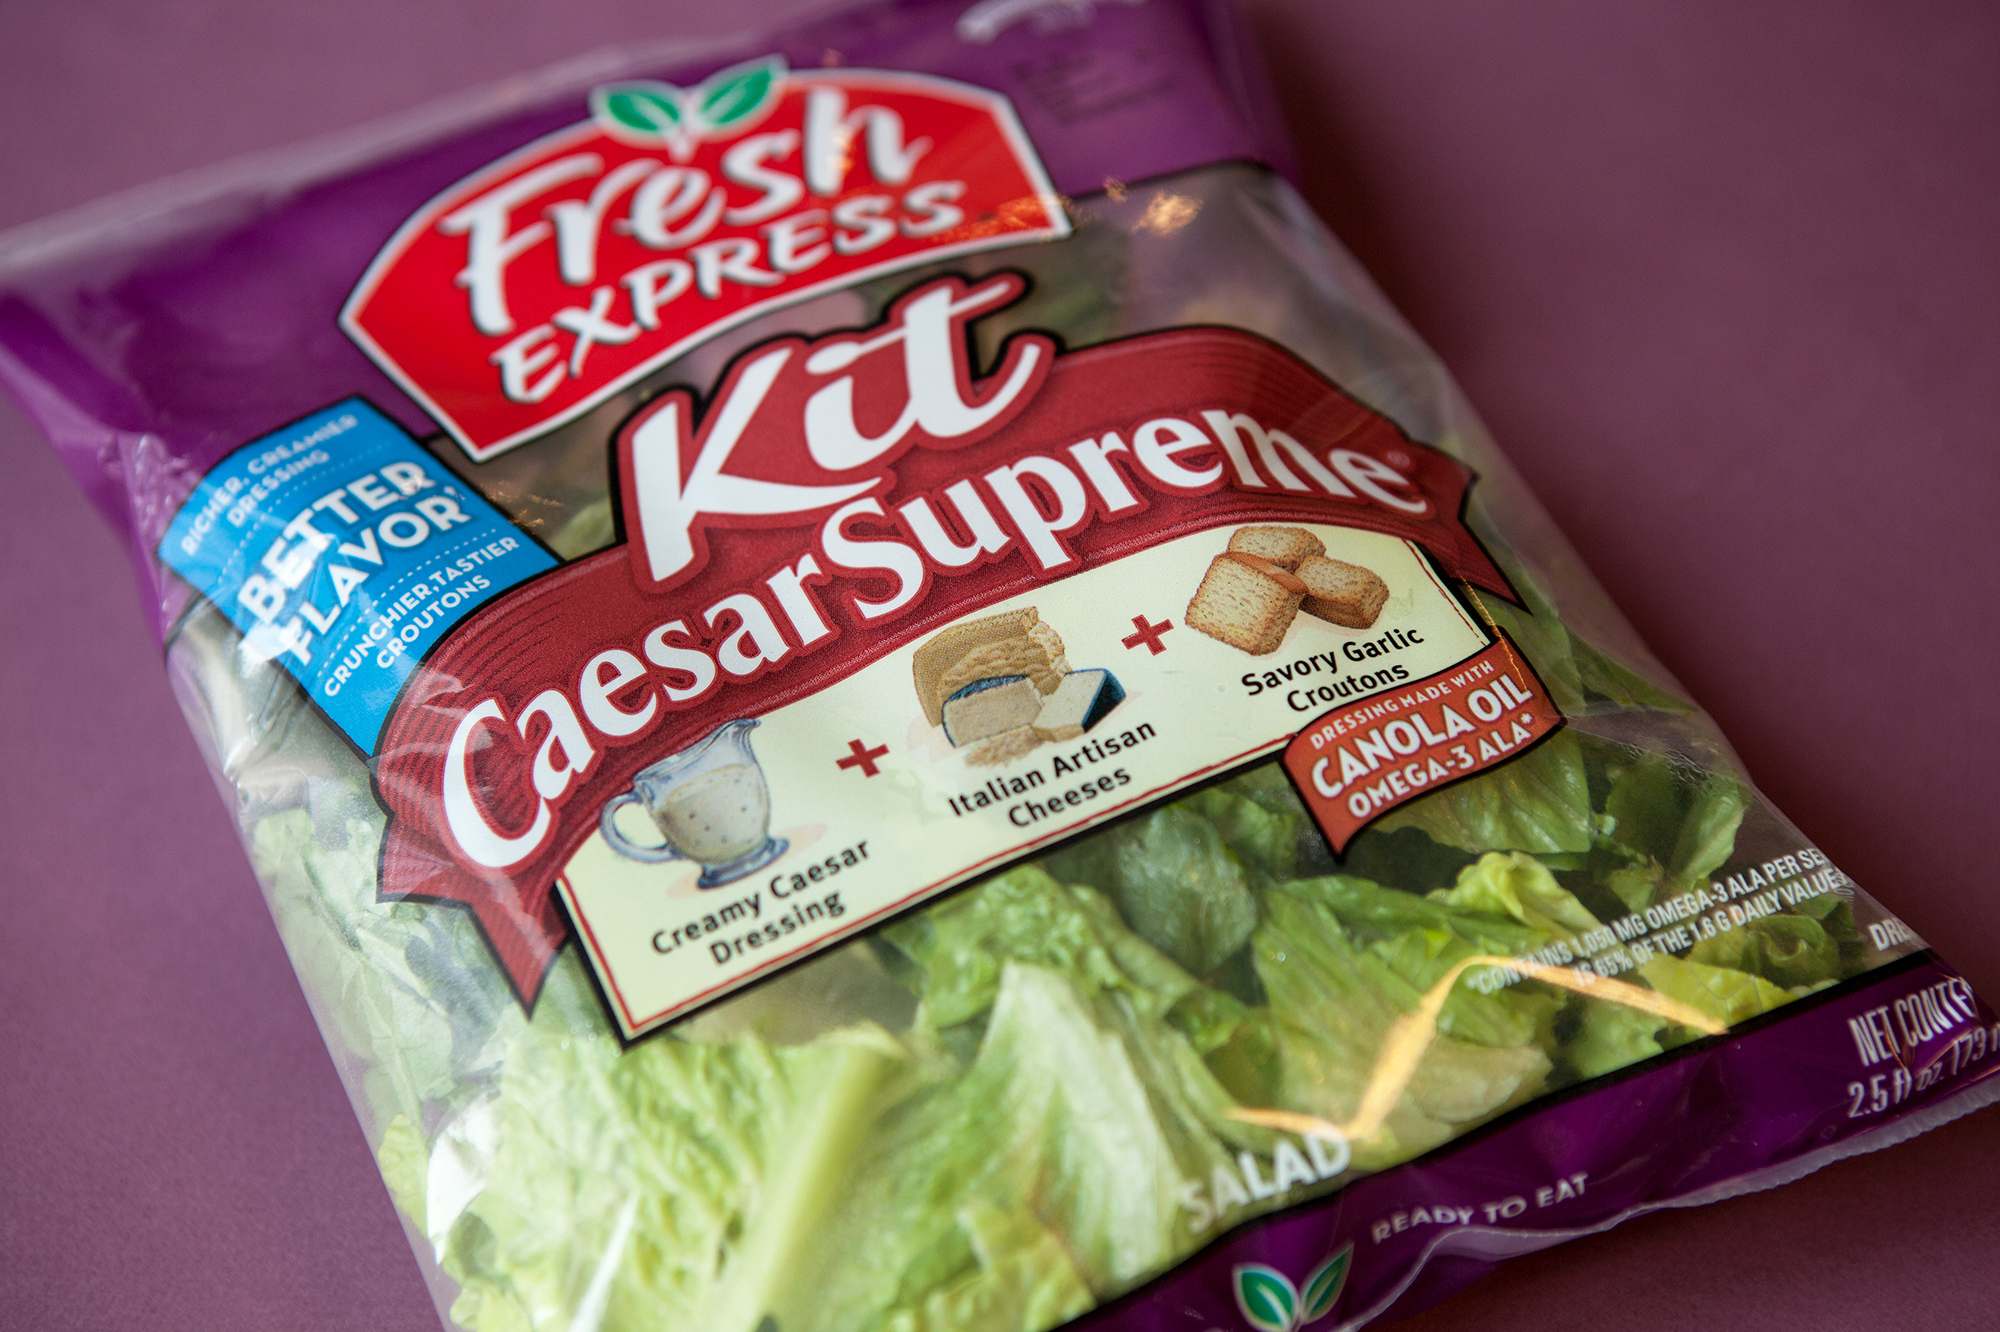 A Caesar salad kit. Americans buy twice as many packages of bagged salad greens as heads of lettuce these days. Is the bagged stuff just as good? If it gets you to eat more leafy greens, yes.